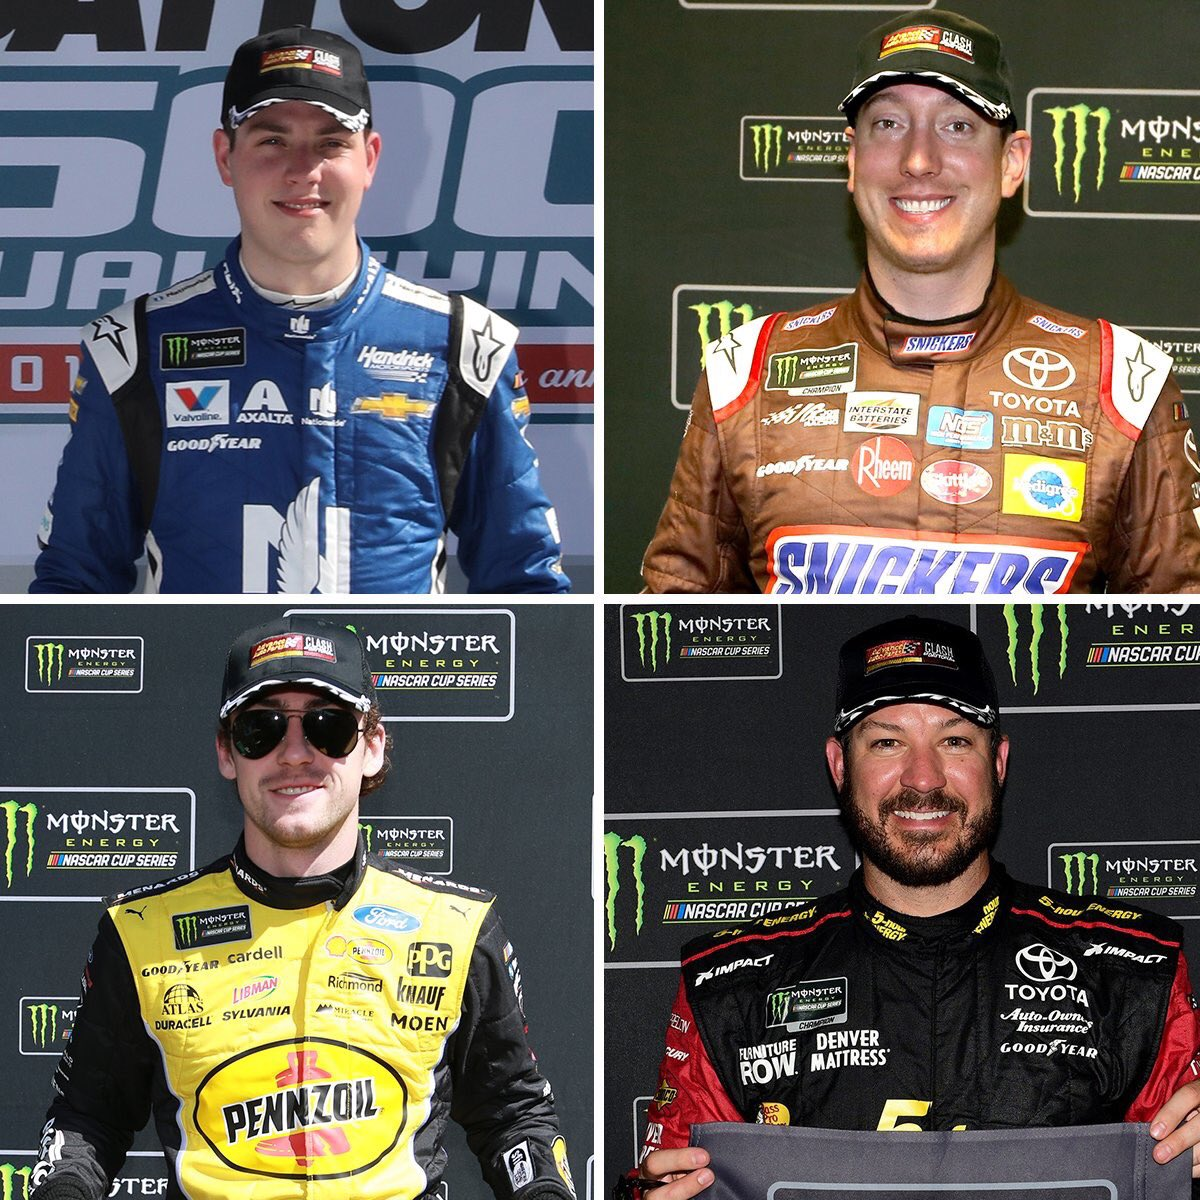 Four drivers have qualified for the the 2019 #AdvanceAutoClash so far this year with pole wins! Who will be added to the list next? #AdvanceOnTrack